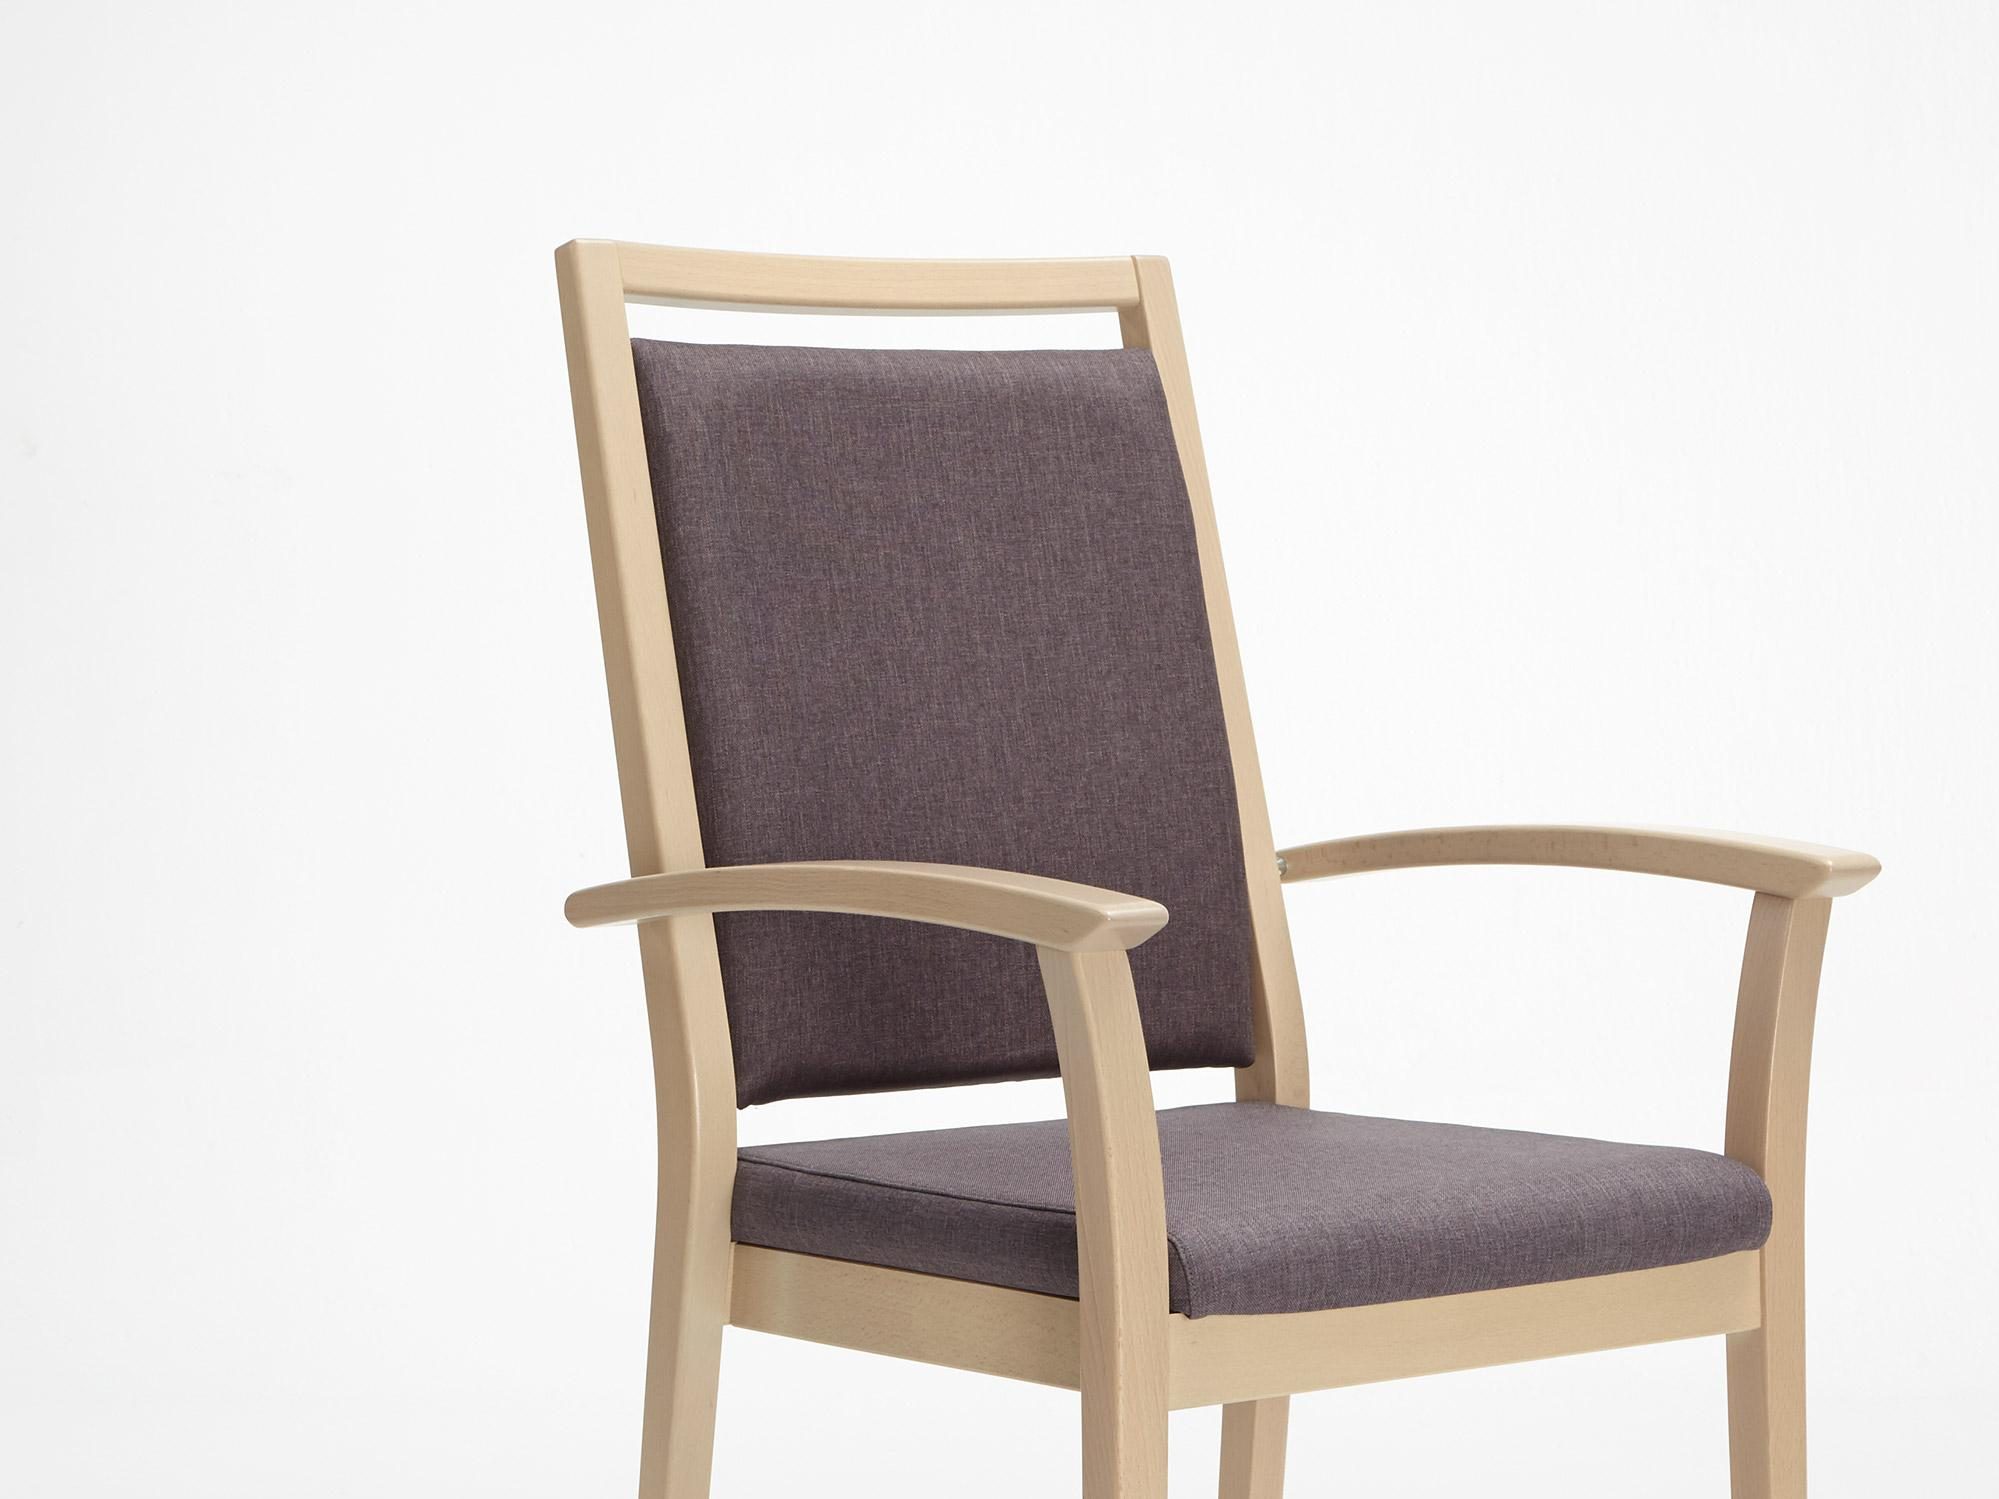 The Mavo model as a high-back chair